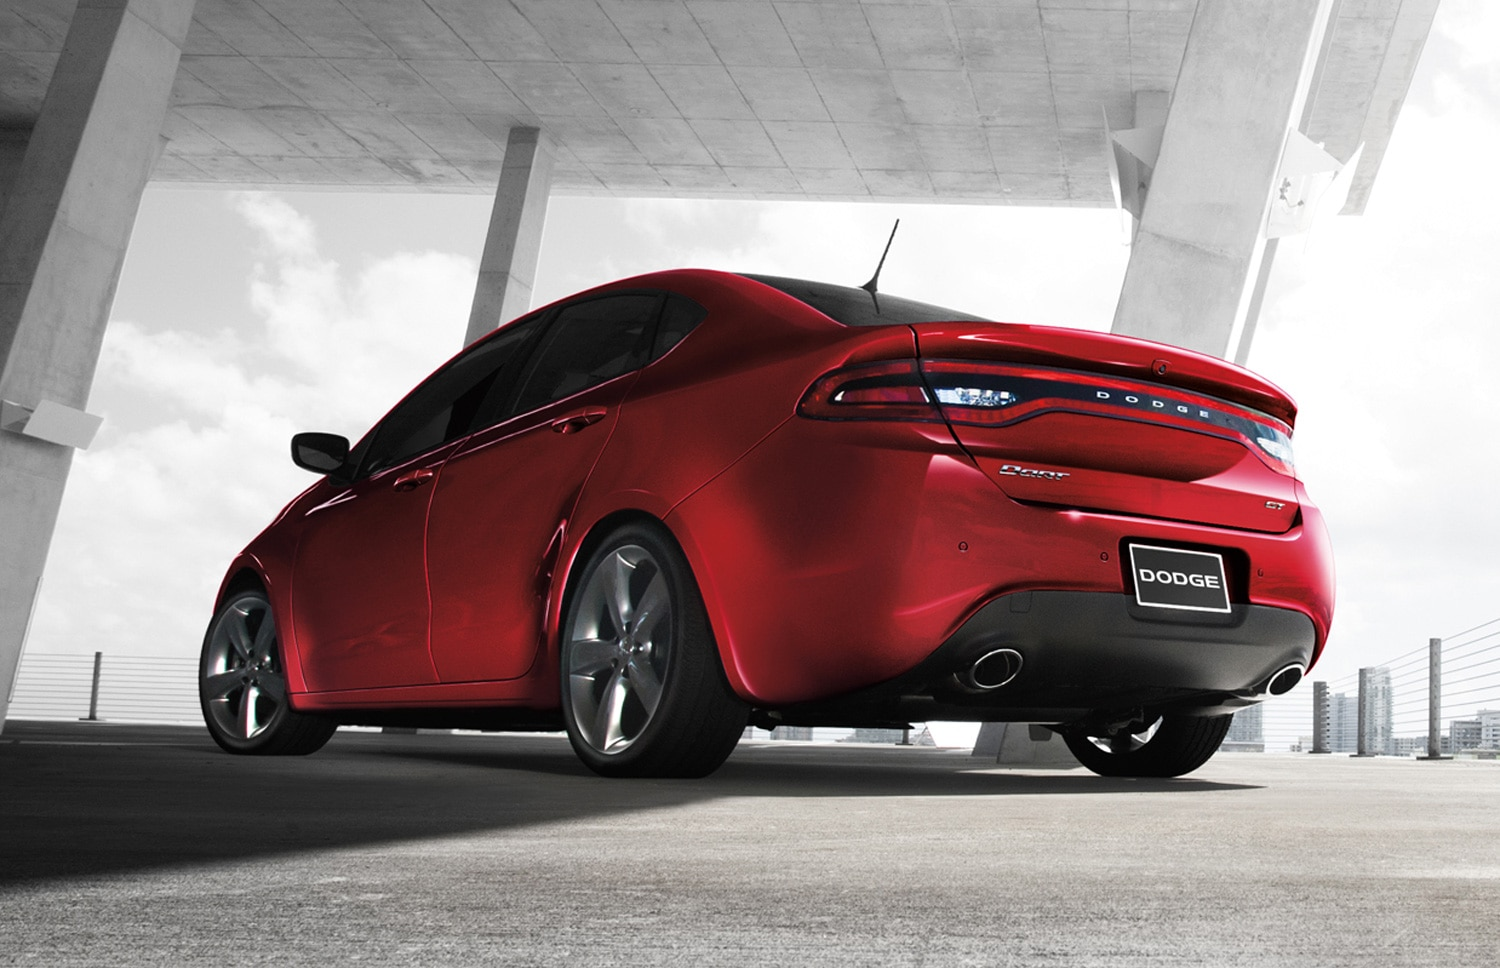 2013 Dodge Dart GT Rear View1